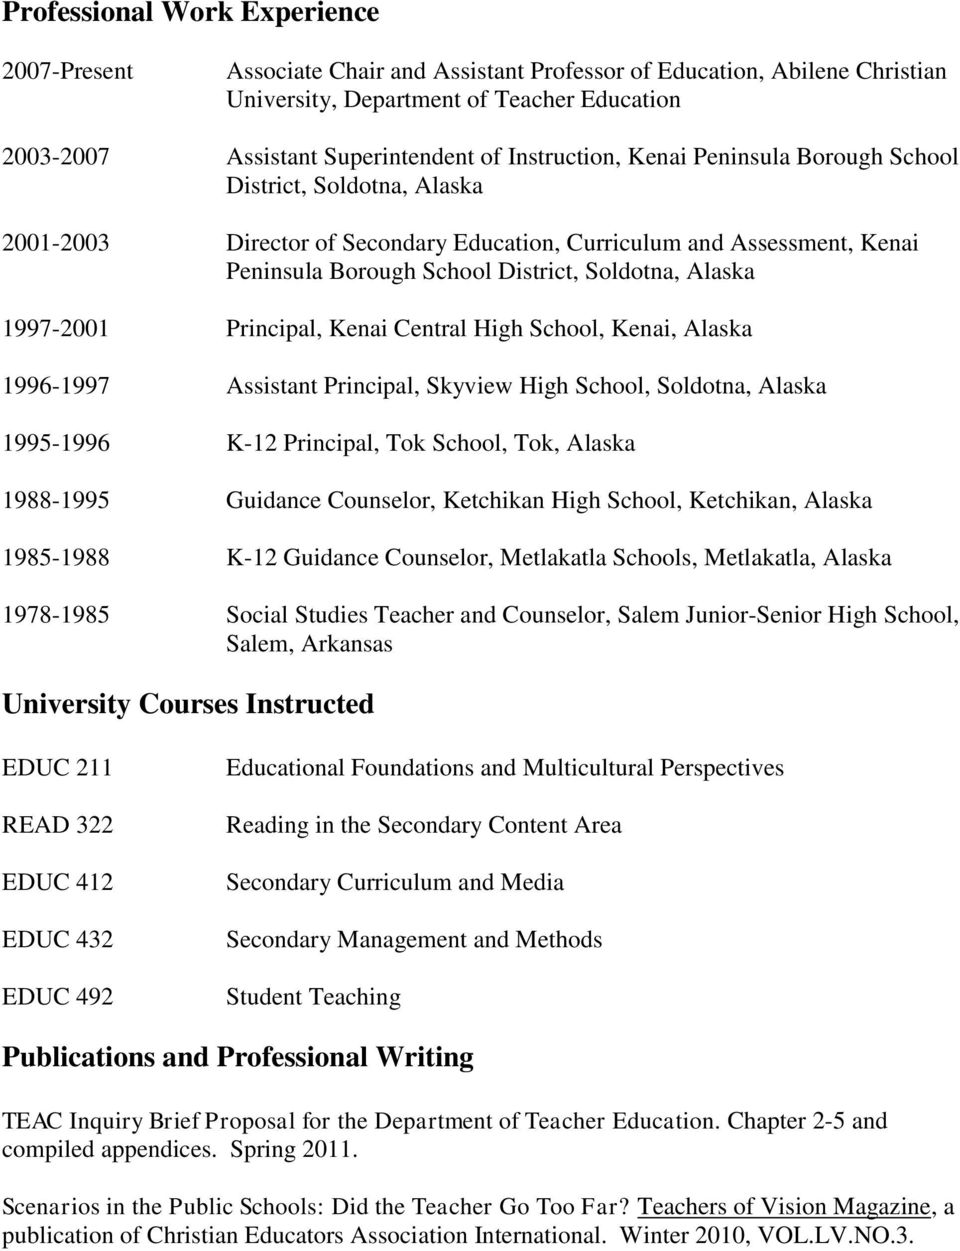 1997-2001 Principal, Kenai Central High School, Kenai, Alaska 1996-1997 Assistant Principal, Skyview High School, Soldotna, Alaska 1995-1996 K-12 Principal, Tok School, Tok, Alaska 1988-1995 Guidance